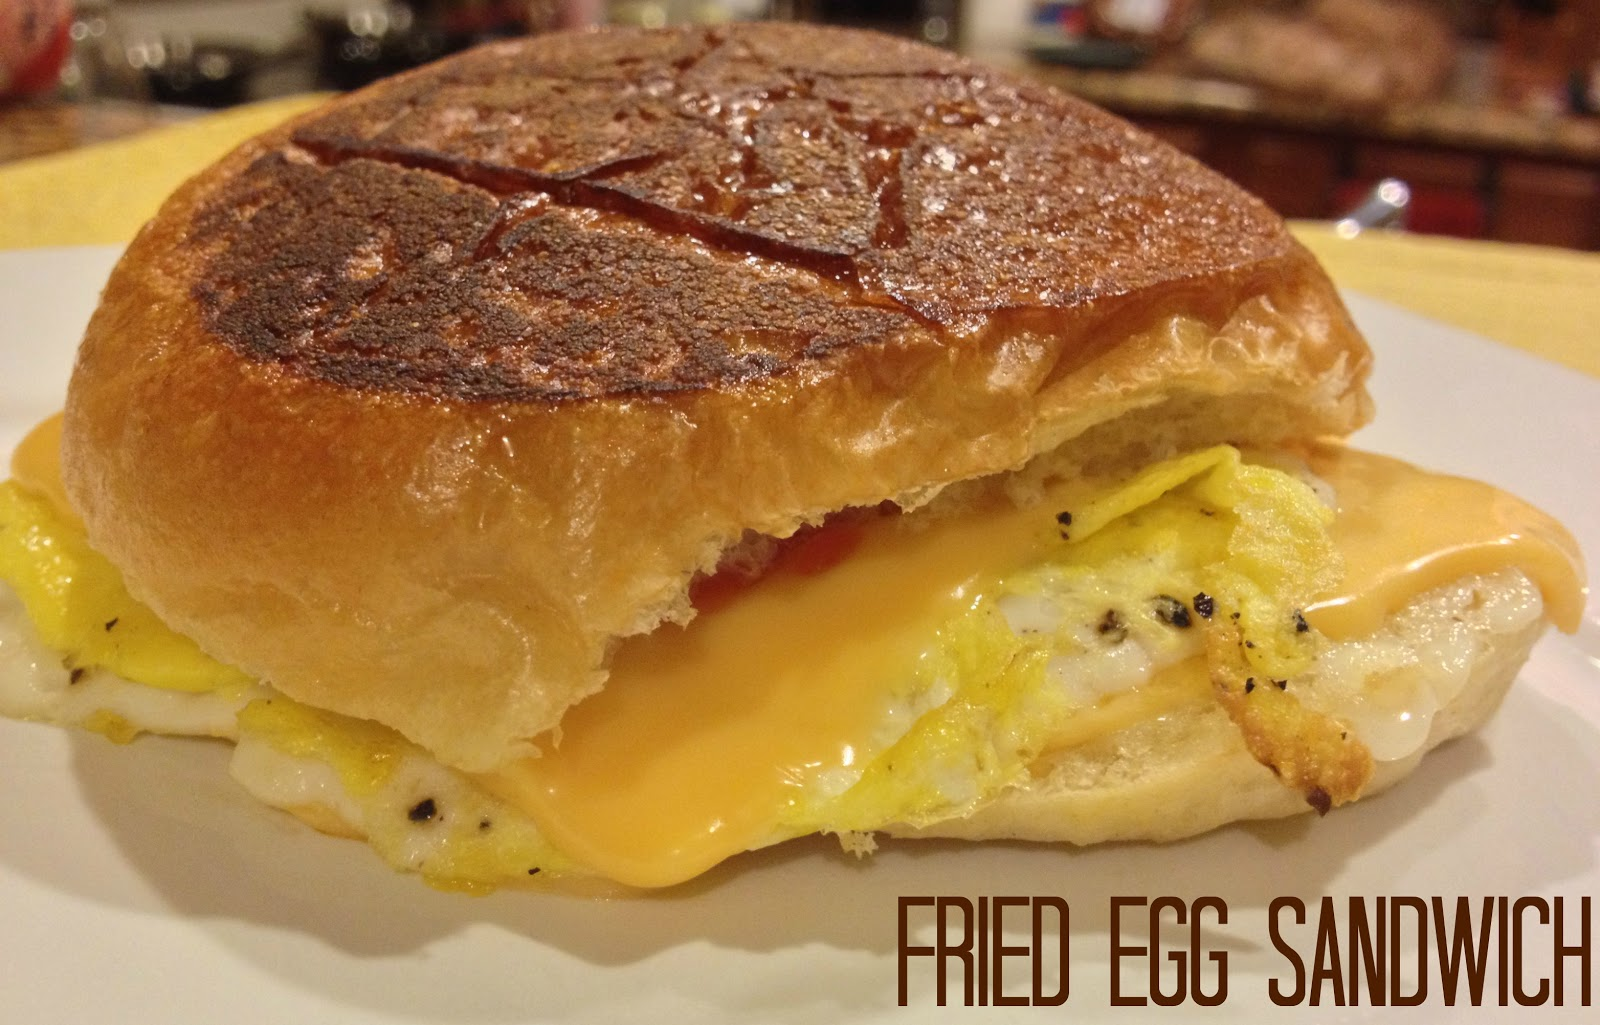 Breakfast for Dinner - Fried Egg Sandwich | This Gal Cooks